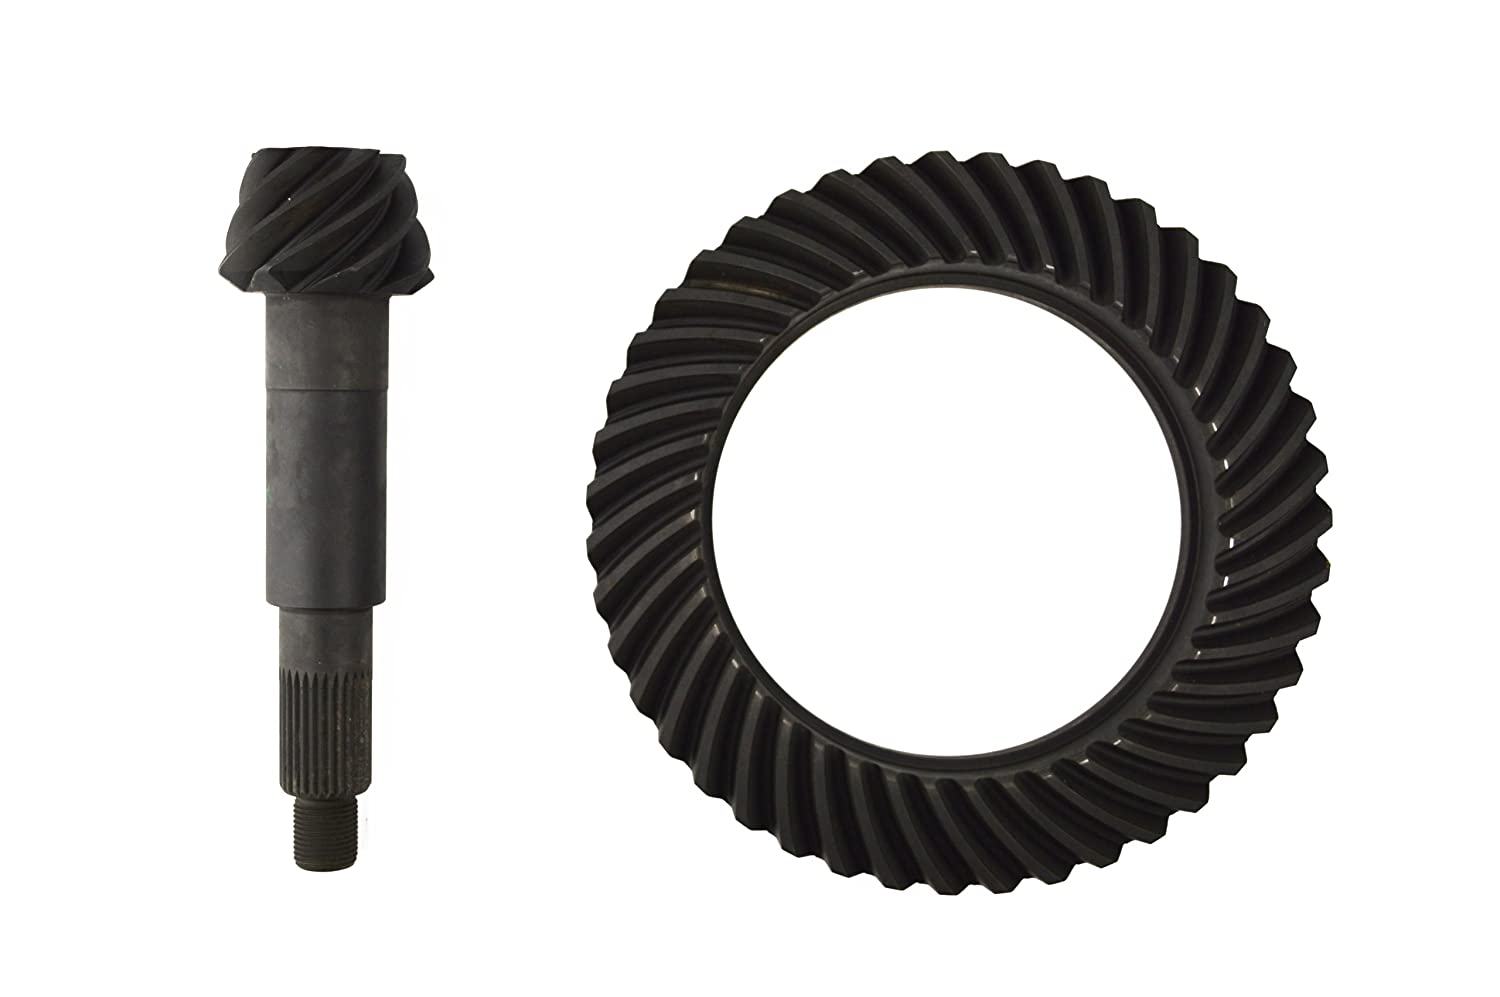 SVL 2020852 Differential Ring and Pinion Gear Set for DANA 60 5.38 Ratio